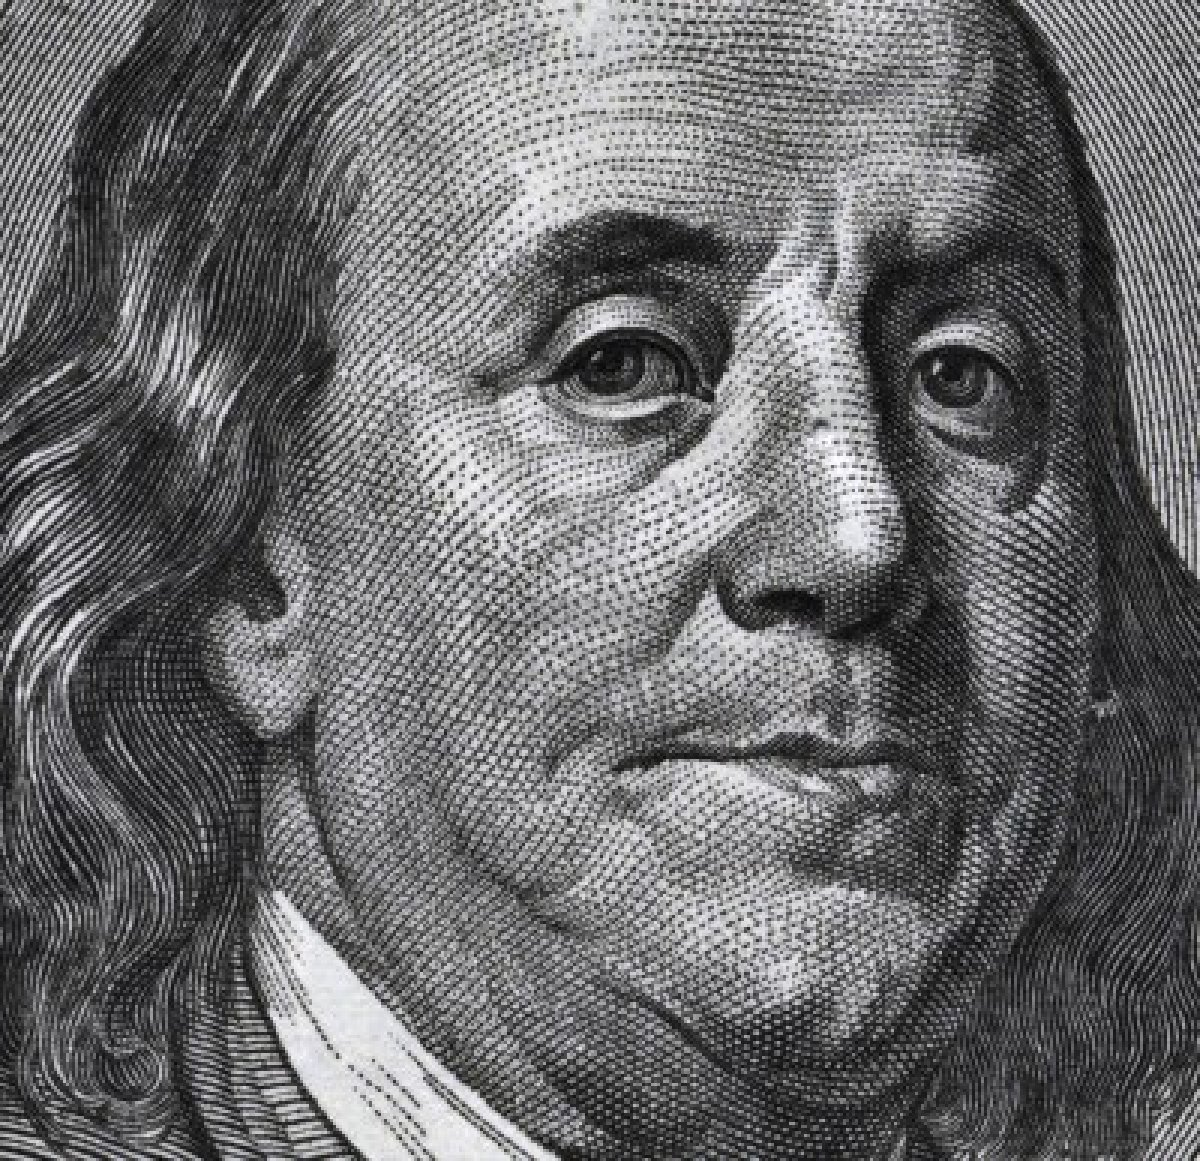 https://i2.wp.com/imarketsmart.com/wp-content/uploads/2013/08/Benjamin-Franklin.jpg